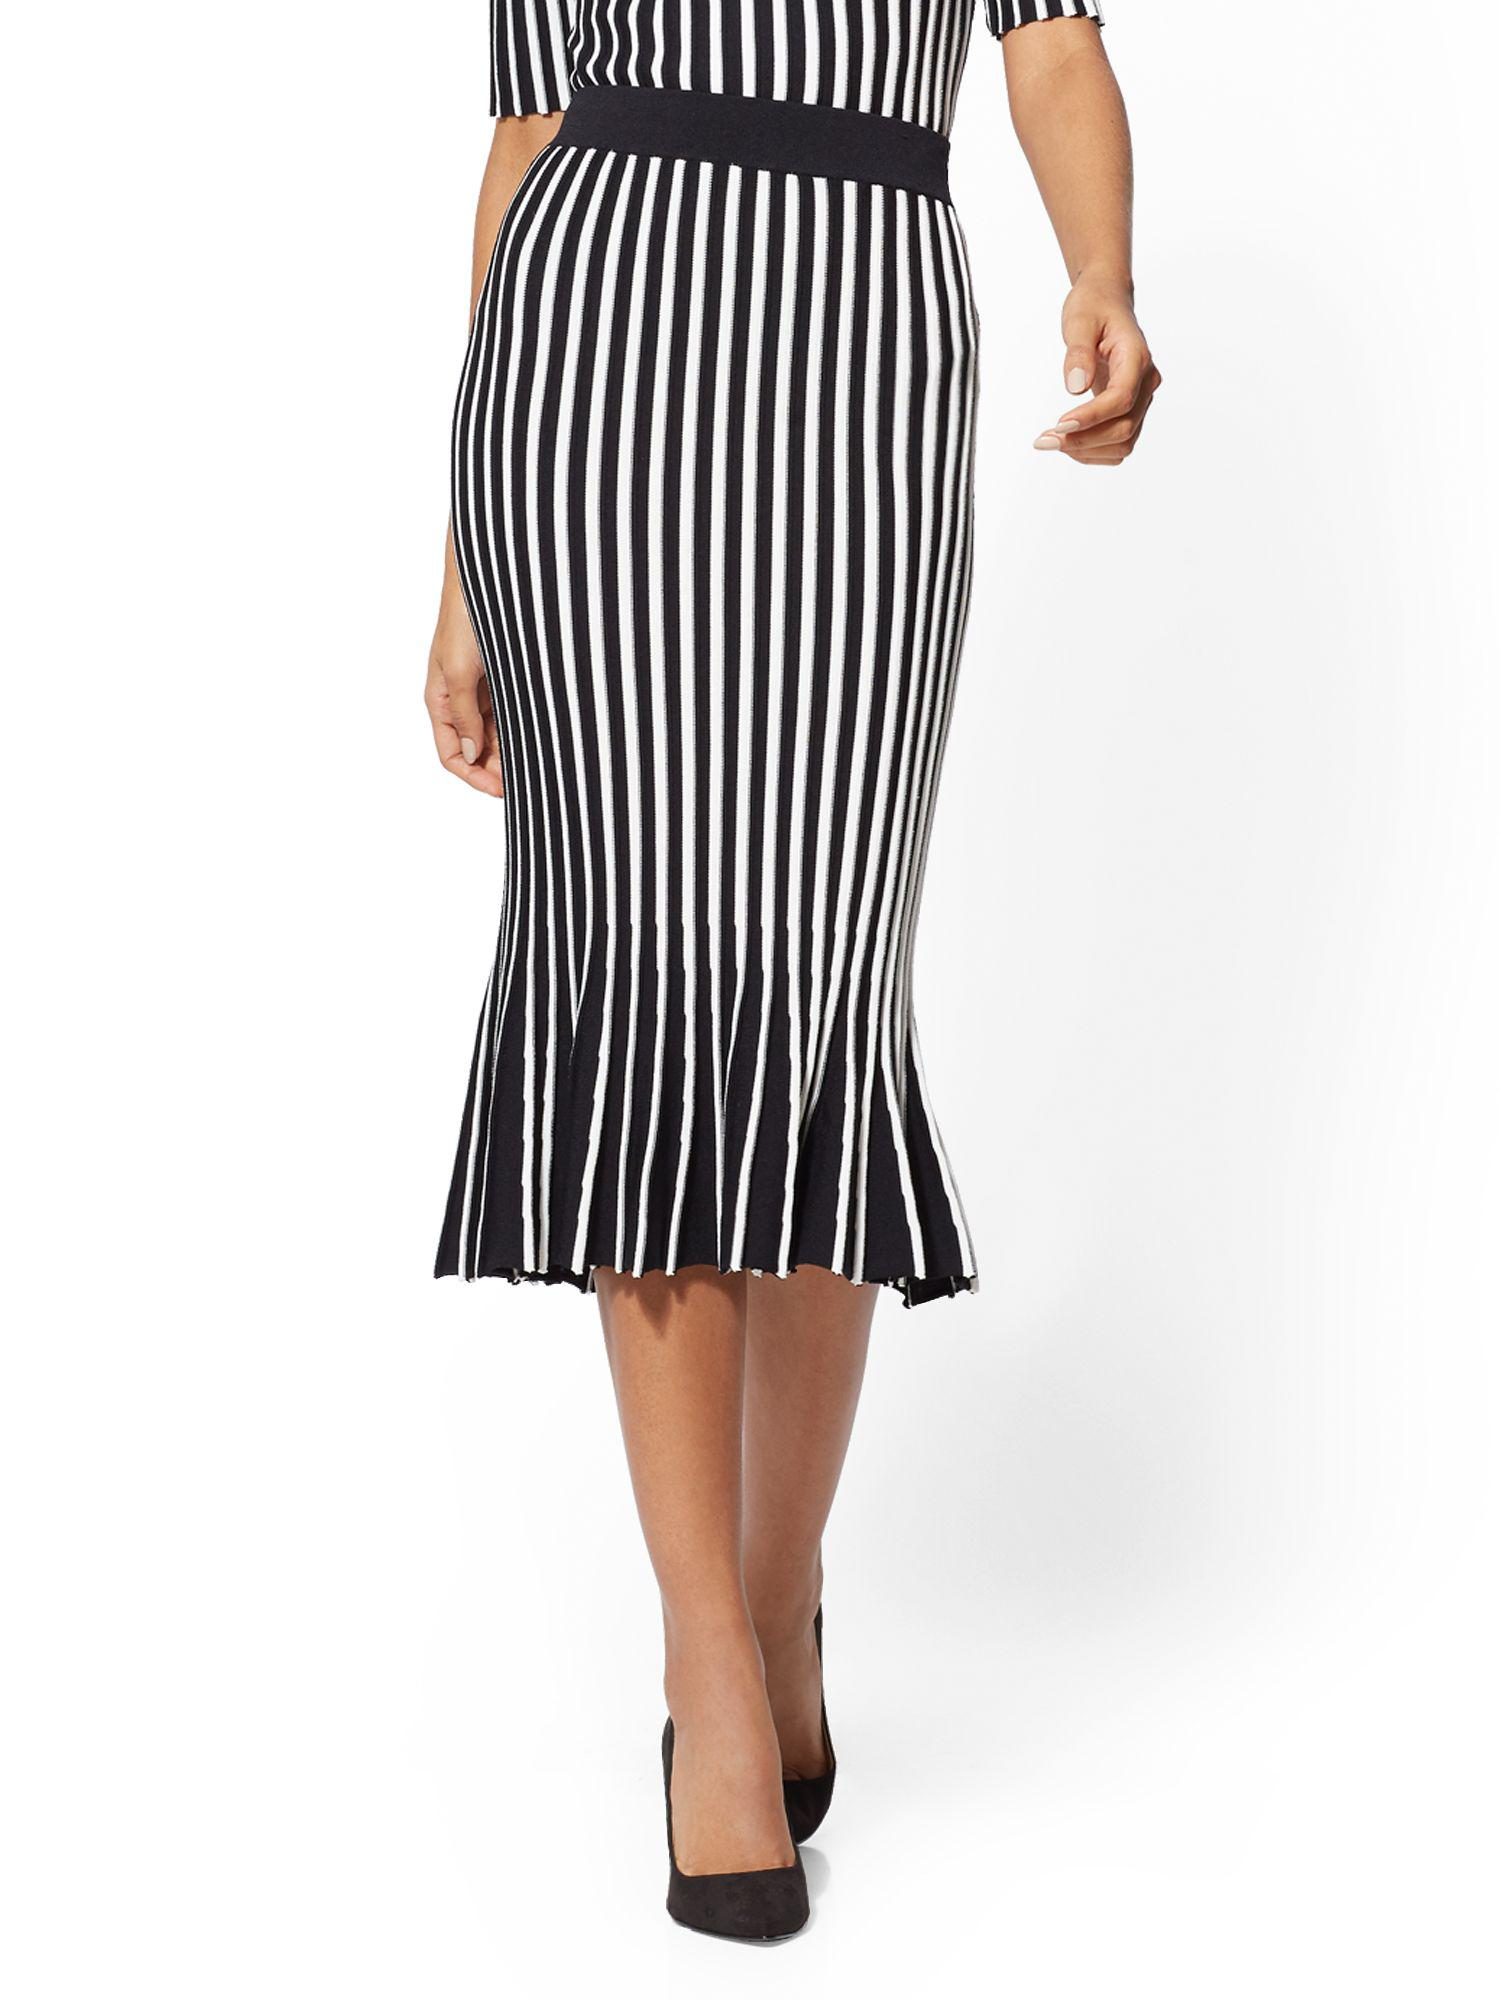 a9bfbbbf6c New York & Company 7th Avenue - Stripe Pleated Sweater Skirt in ...